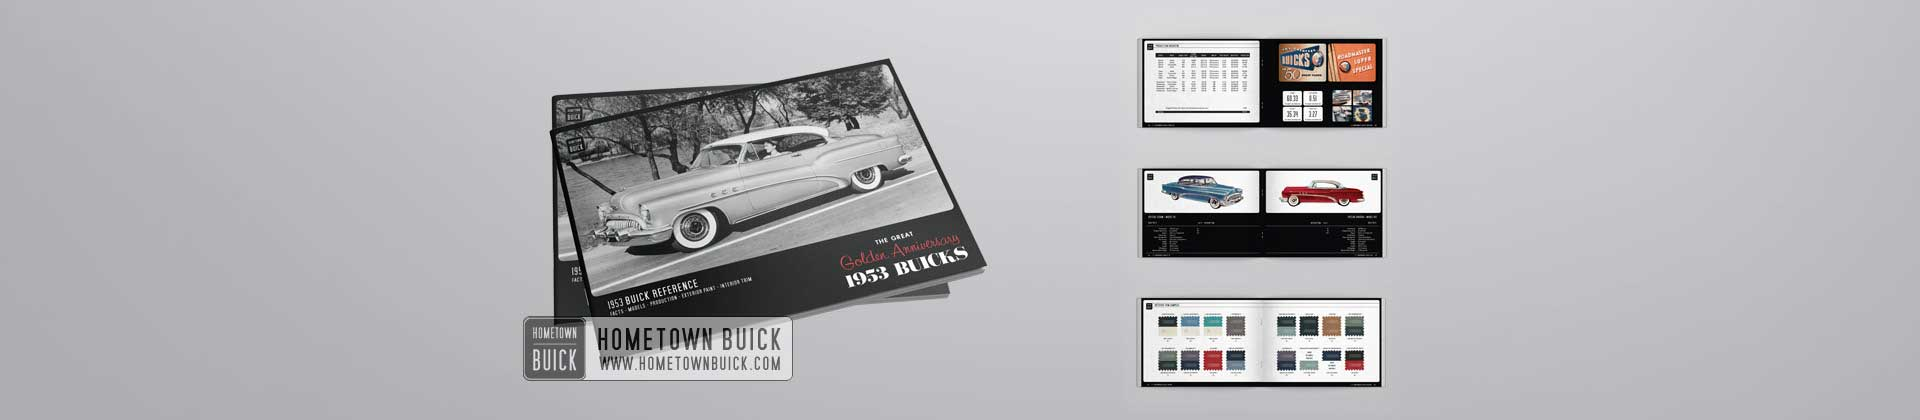 1953 Buick Reference Book Feature